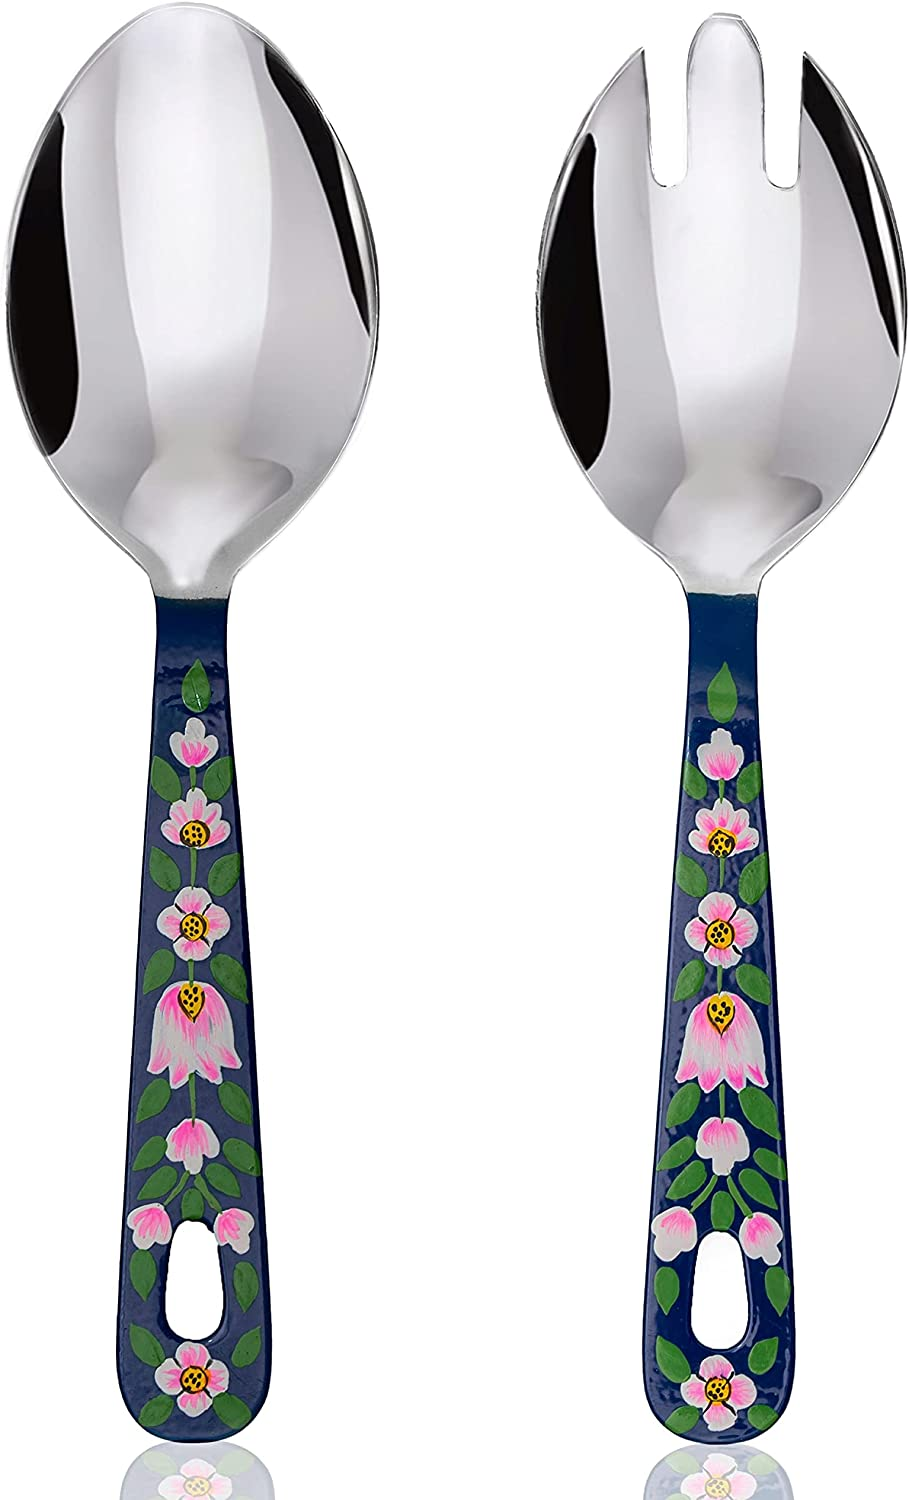 Hand Painted Serving Spoon and Fork – Large Stainless Steel